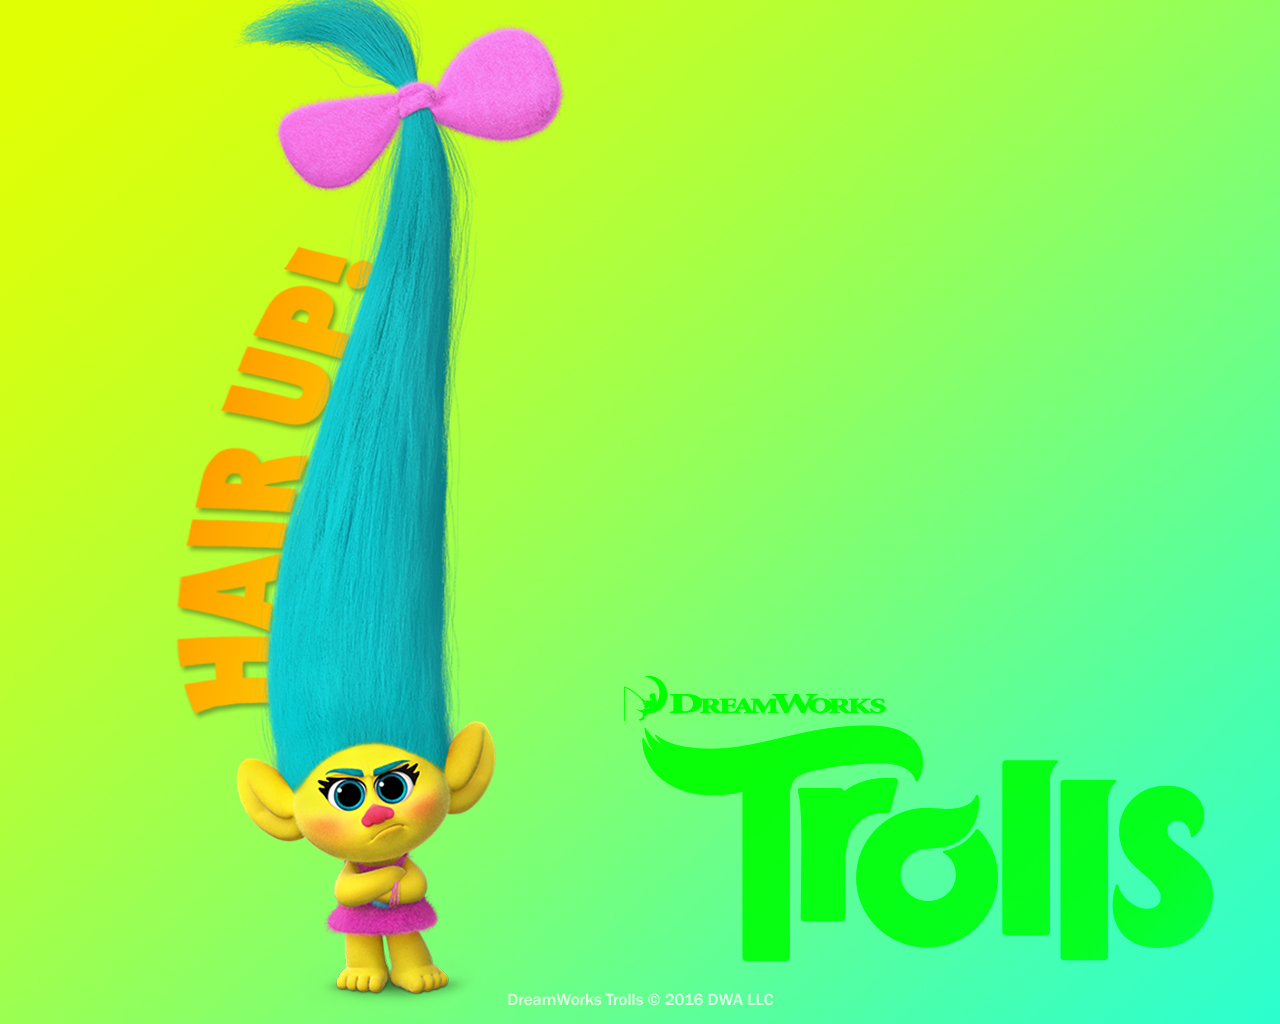 DreamWorks Trolls Images Smidge HD Wallpaper And Background Photos 40223522